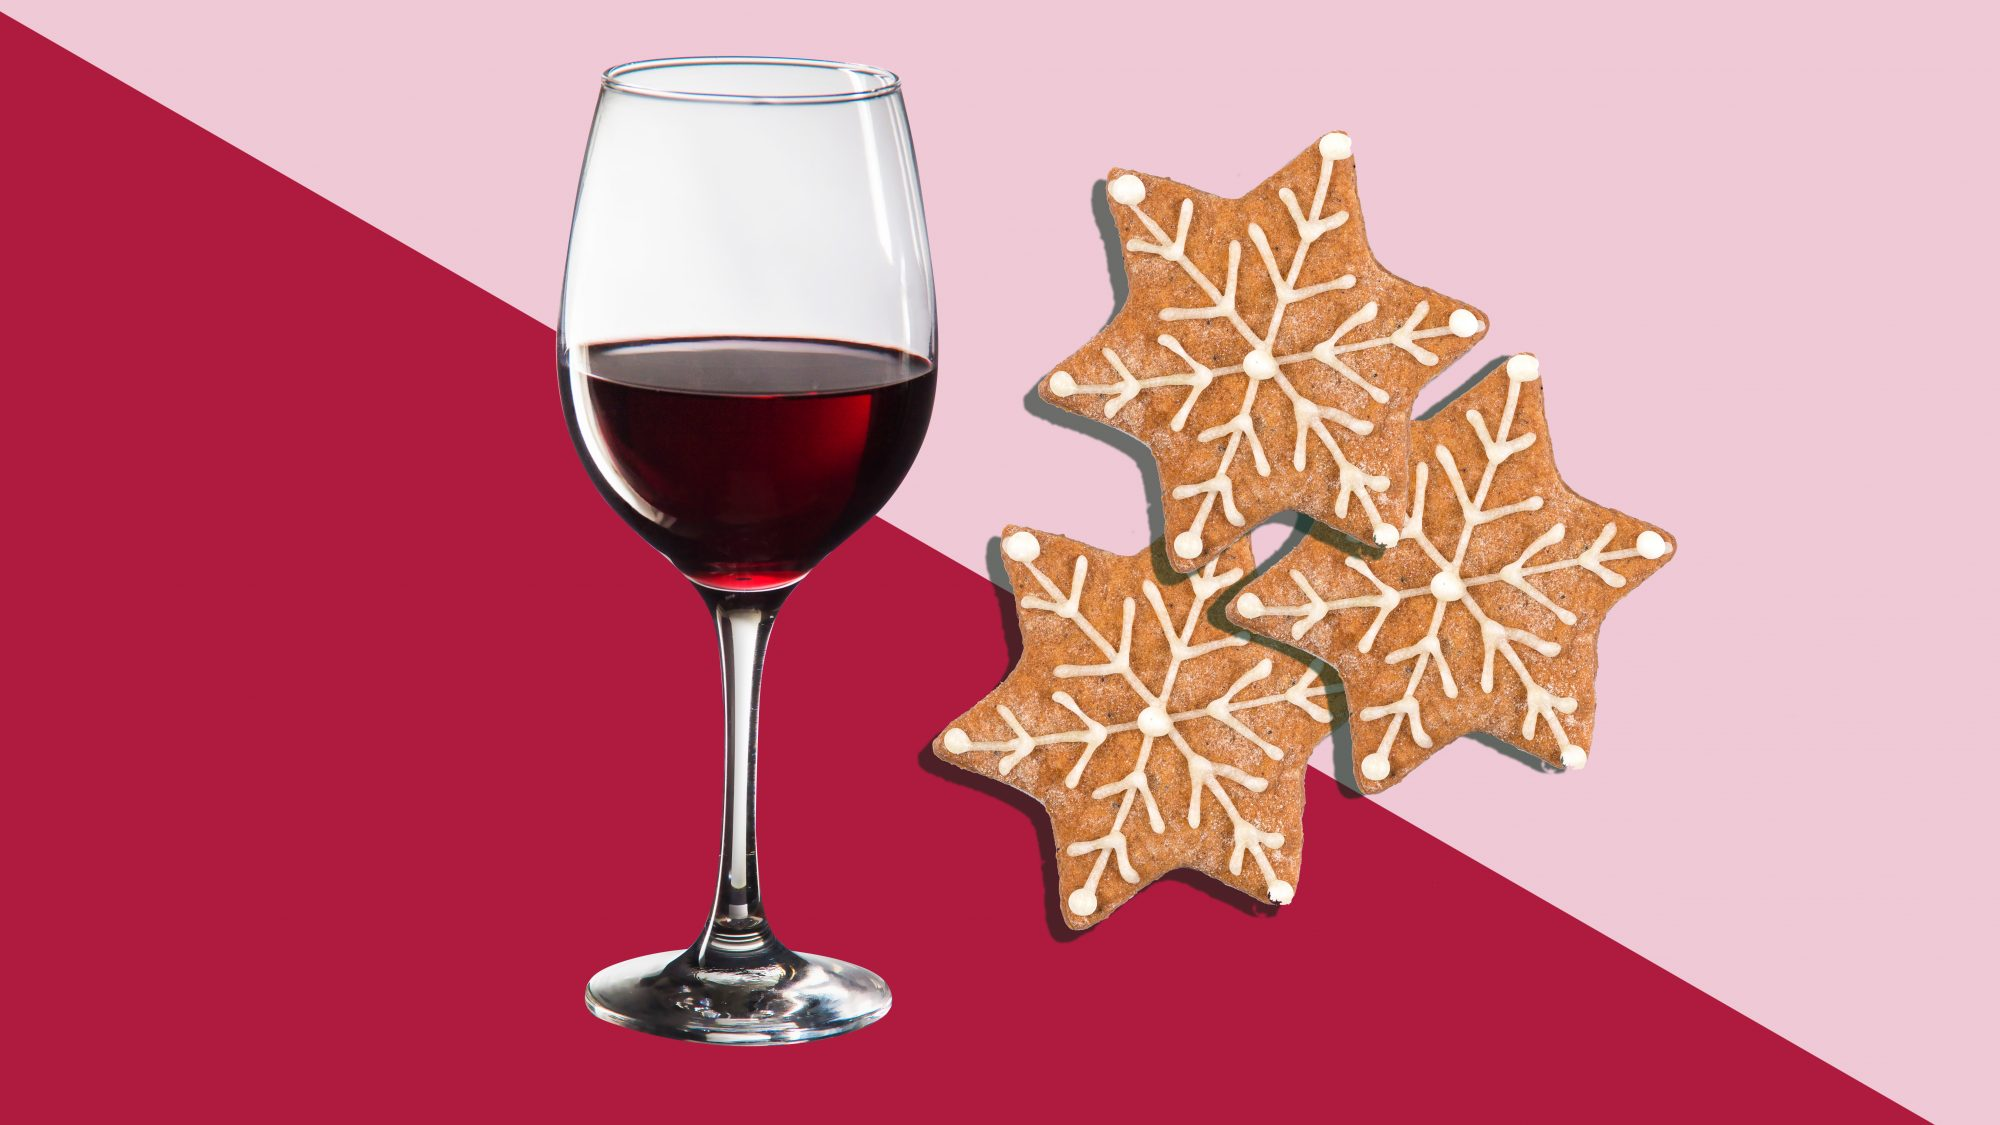 glass of red wine and cookies